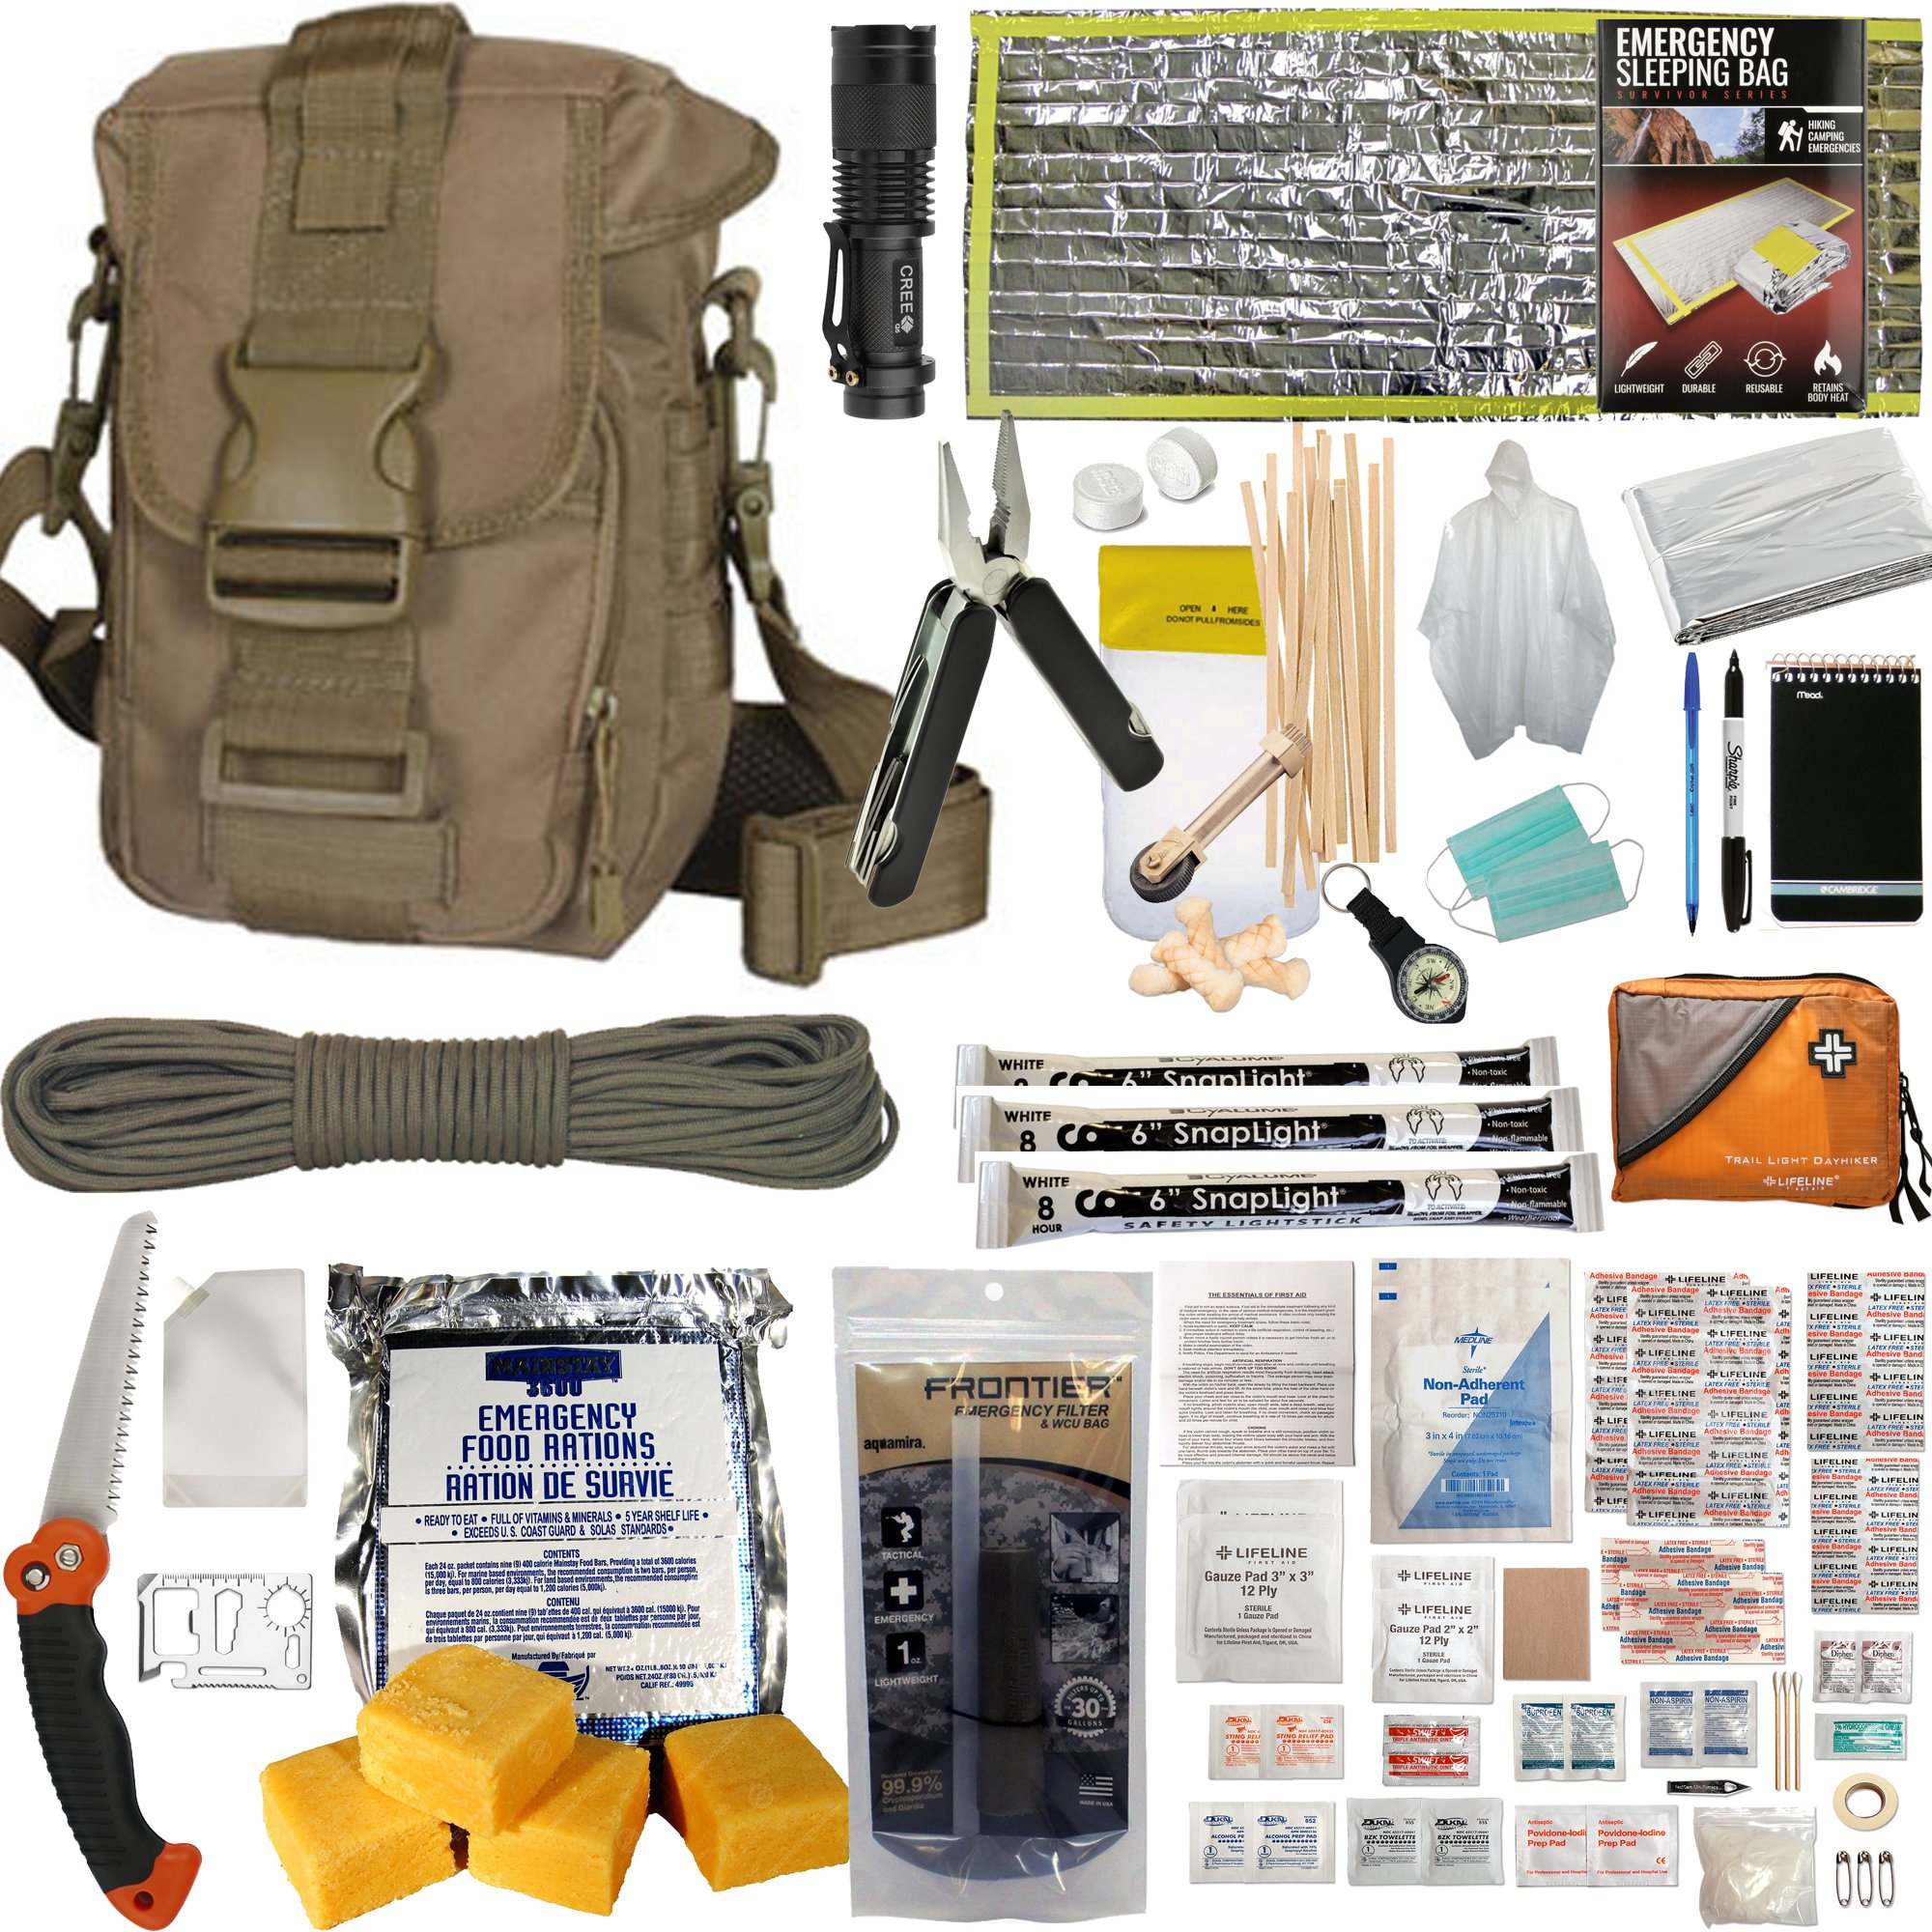 PREPPER'S FAVORITE: Emergency Get Home Bag with First Aid Kit, Water Filter, Food, Fire, Tools and Shelter. Ideal Compact Bug Out Bag, Earthquake Kit, EDC or 72 Hr Kit. Tactical Shoulder Bag Model by Prepper's Favorite (Image #1)